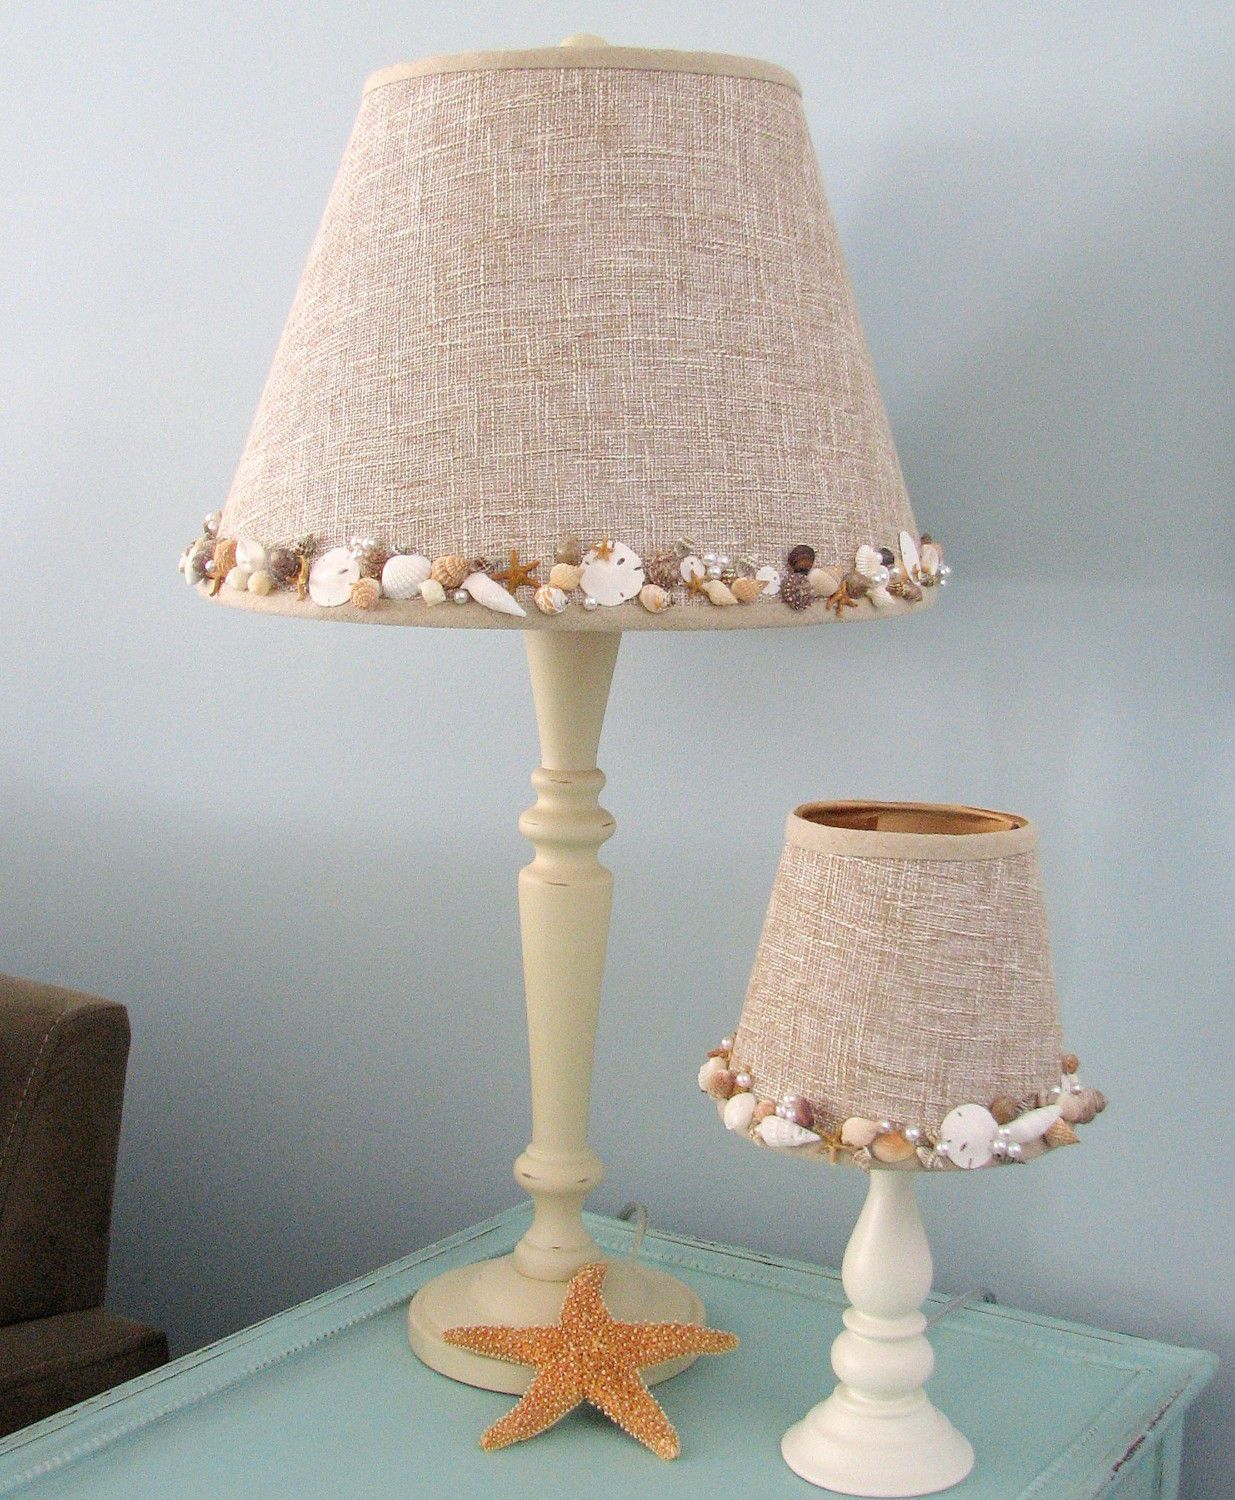 Seashell Lamp With Artisan Embellished Shade Maybe Diy